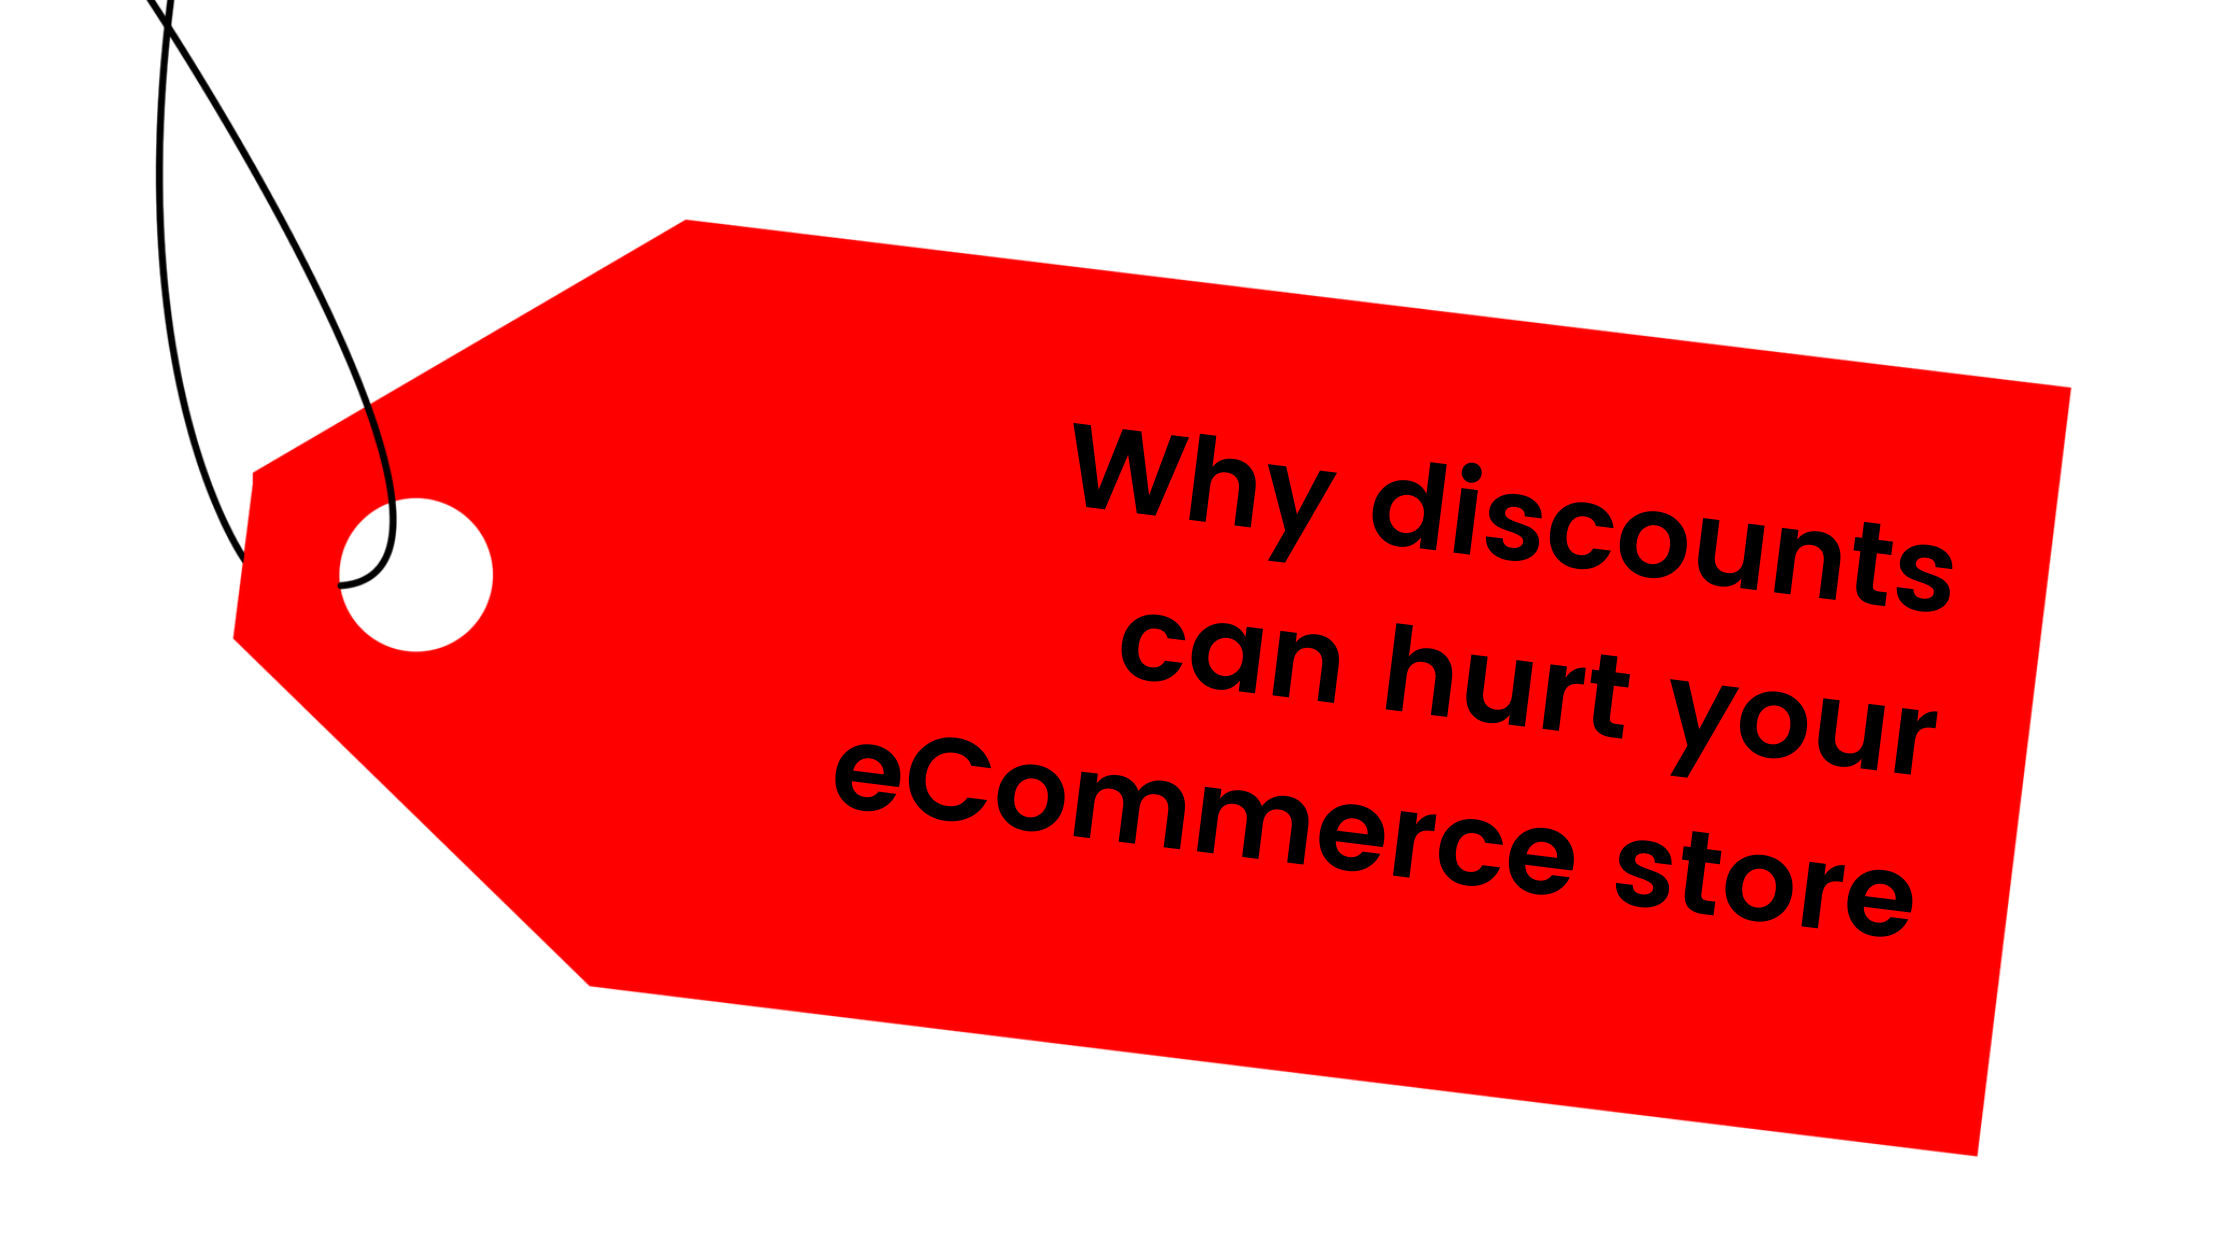 Why discounts can hurt your eCommerce store